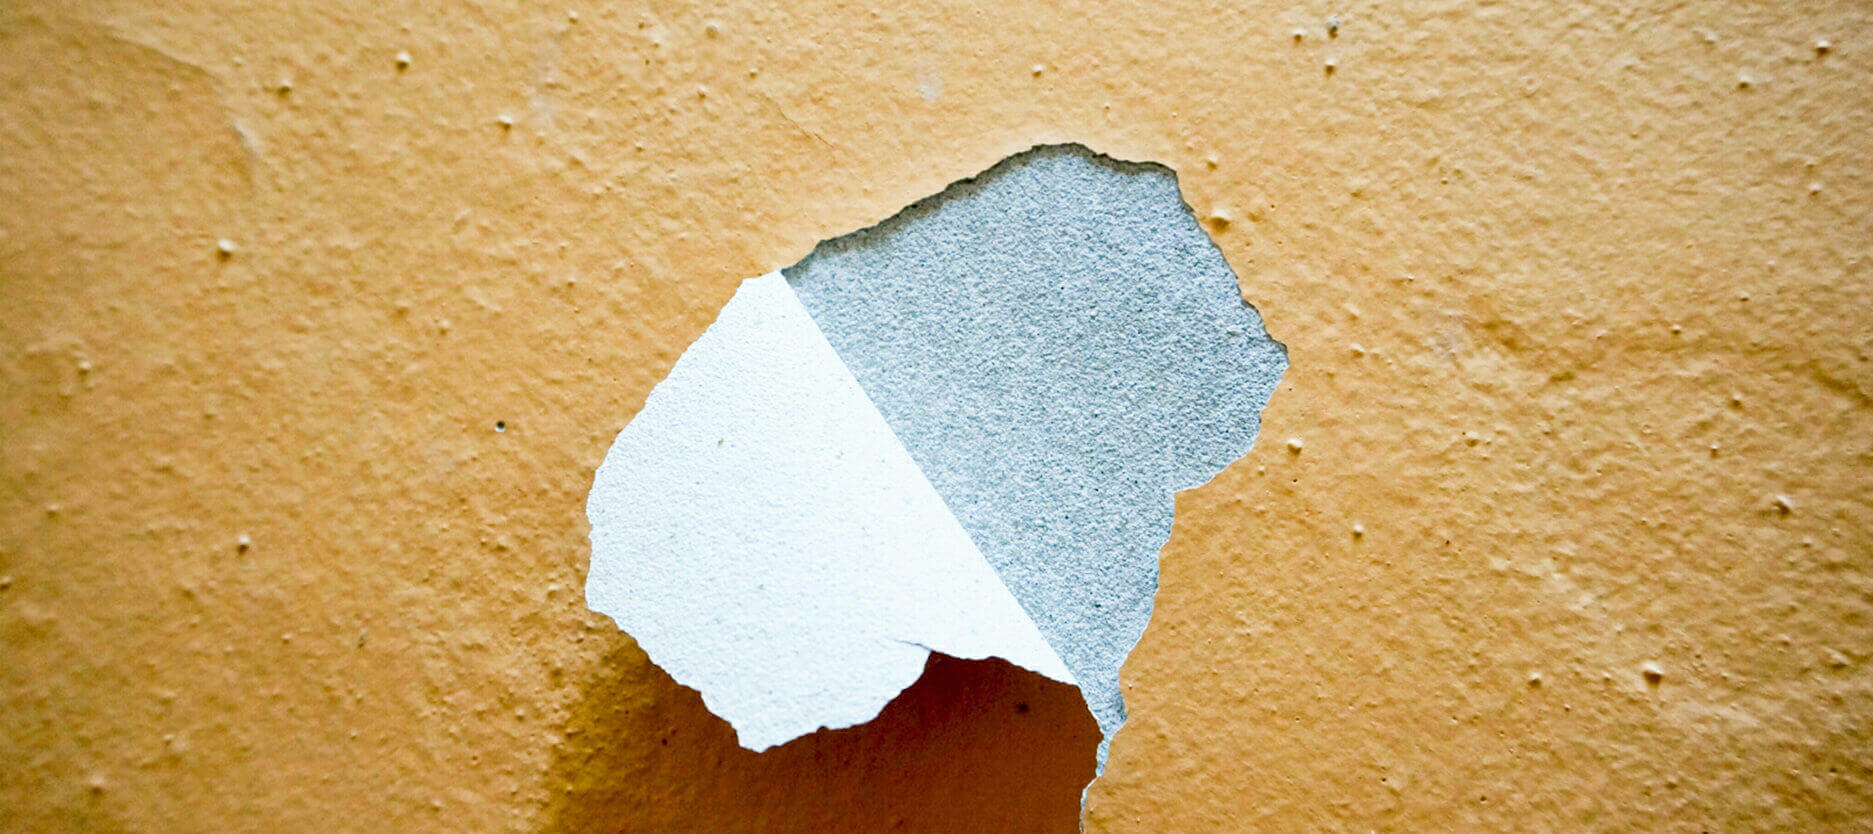 4 Causes of Paint Failures in Exterior Walls